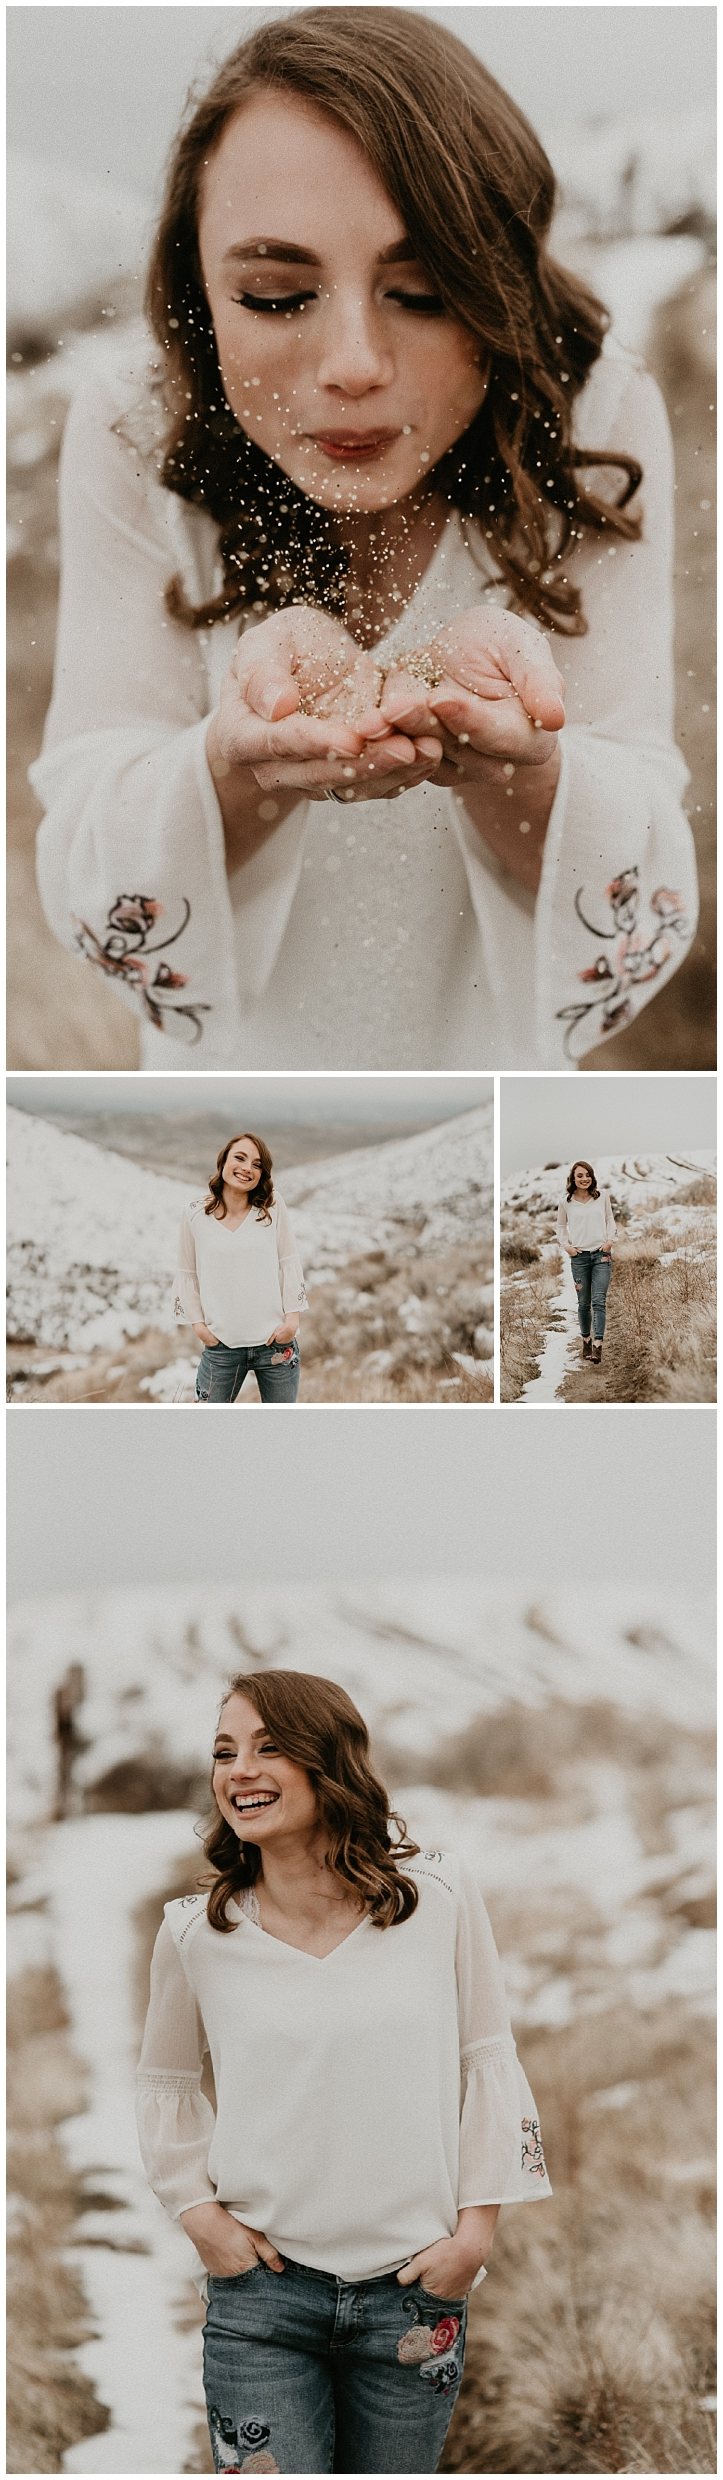 Boise Senior Photographer Meridian Photographers Makayla Madden Senior Pictures Confetti Graduation Idaho Foothills